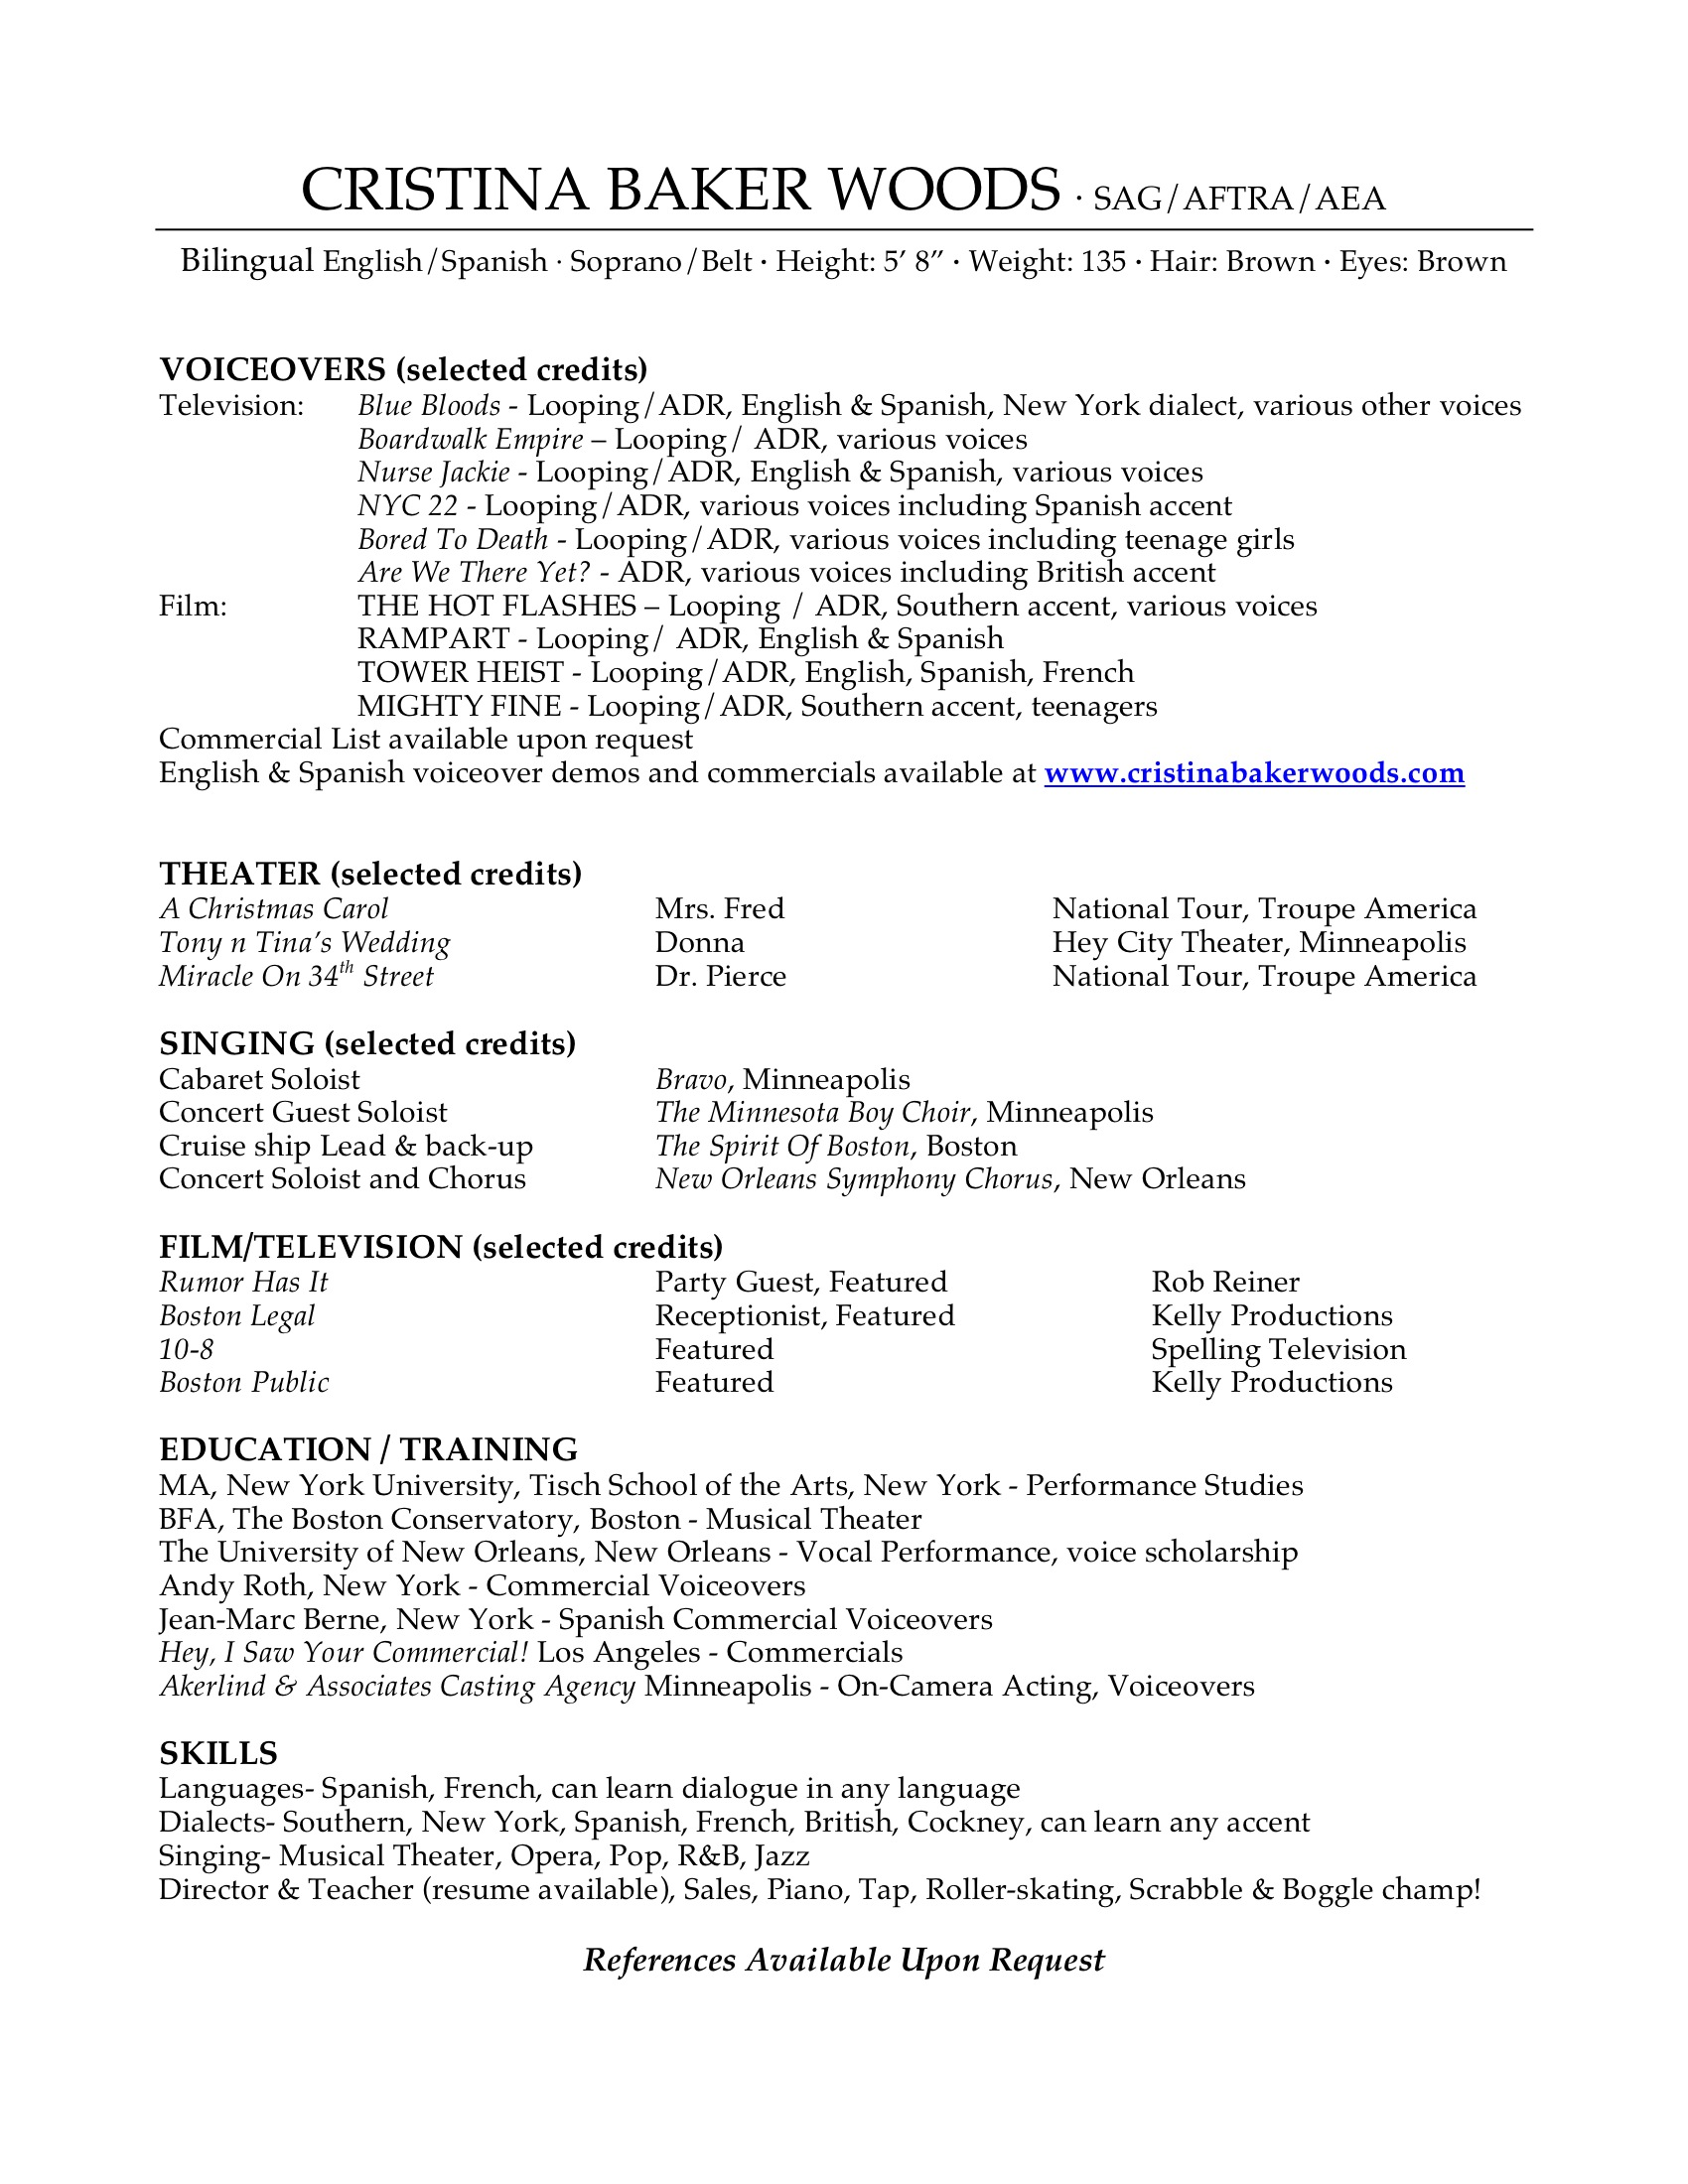 example resume human voice singer objective 2cgzgd professional resources make on iphone Resume Singer Resume Objective